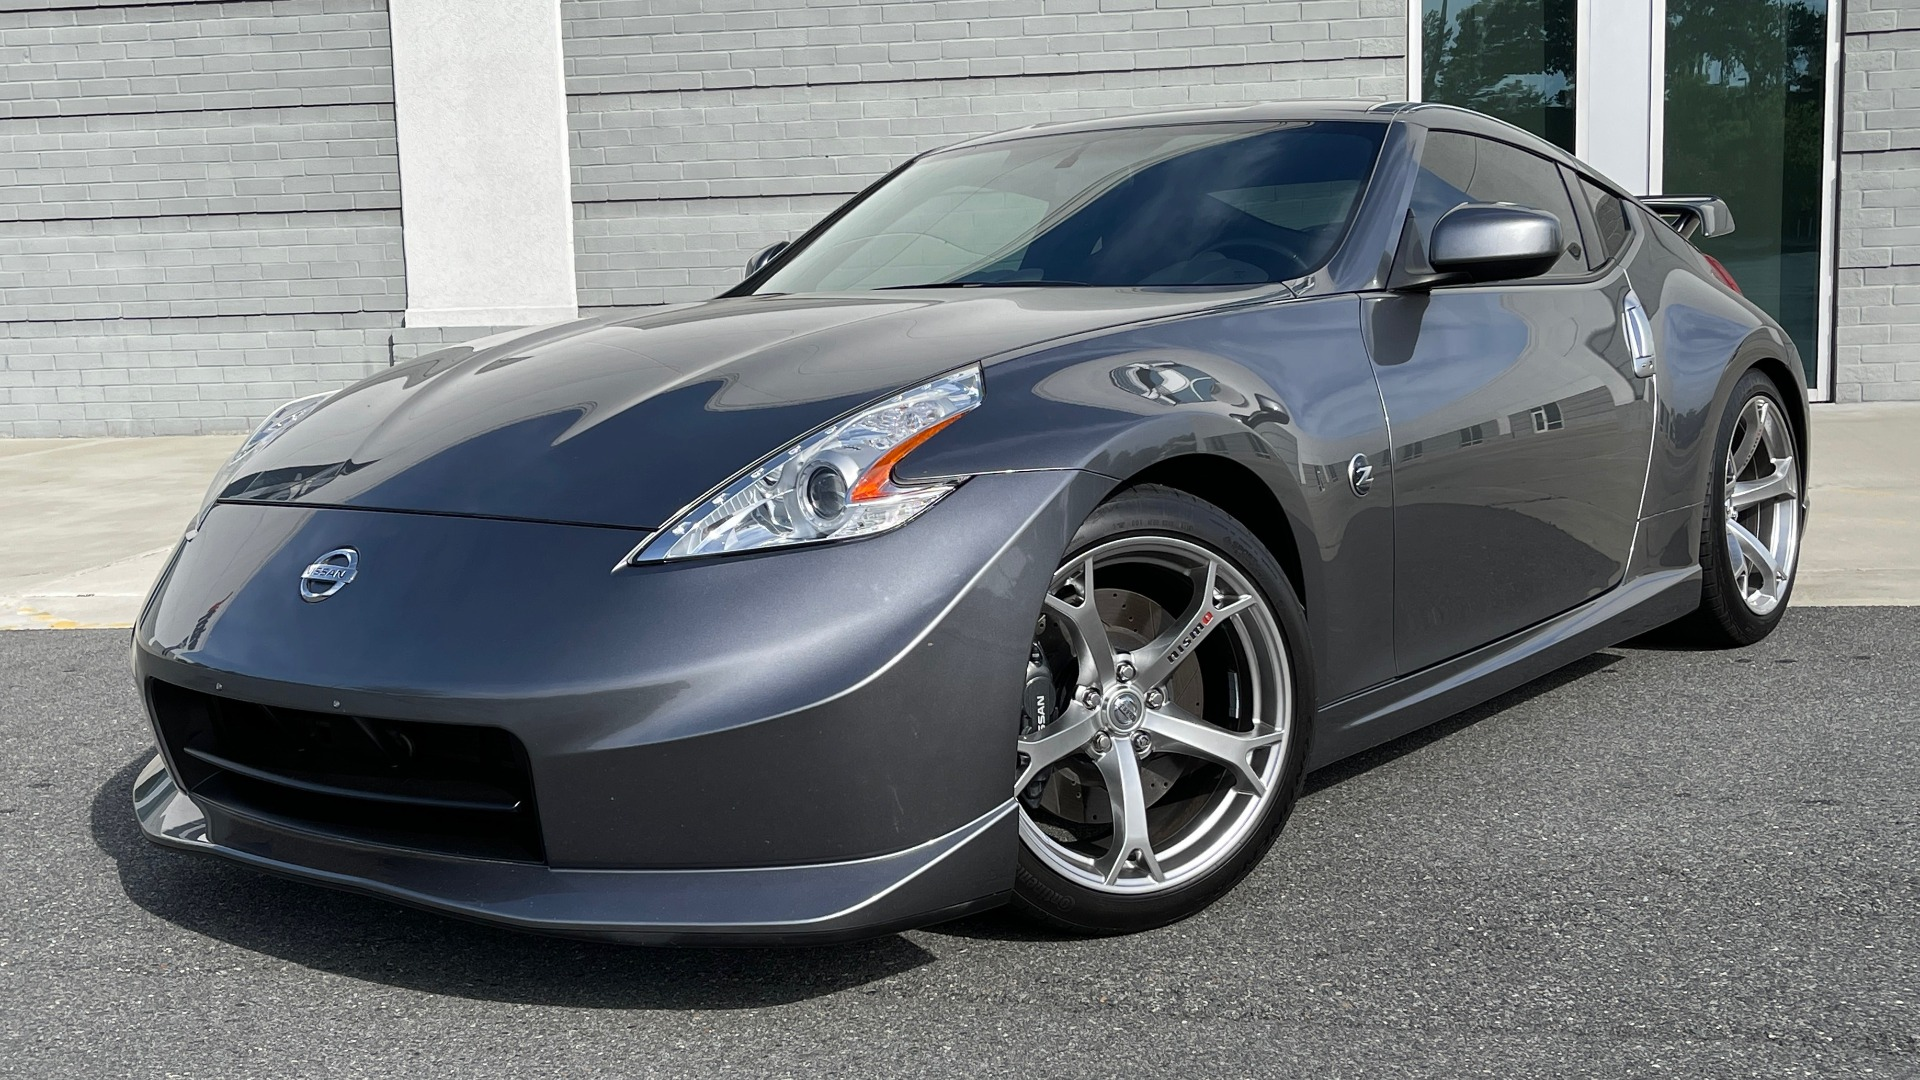 Used 2011 Nissan 370Z NISMO COUPE / 3.7L V6 / 6-SPD MAN / AUTO CLIMATE CONTROL for sale $32,995 at Formula Imports in Charlotte NC 28227 1